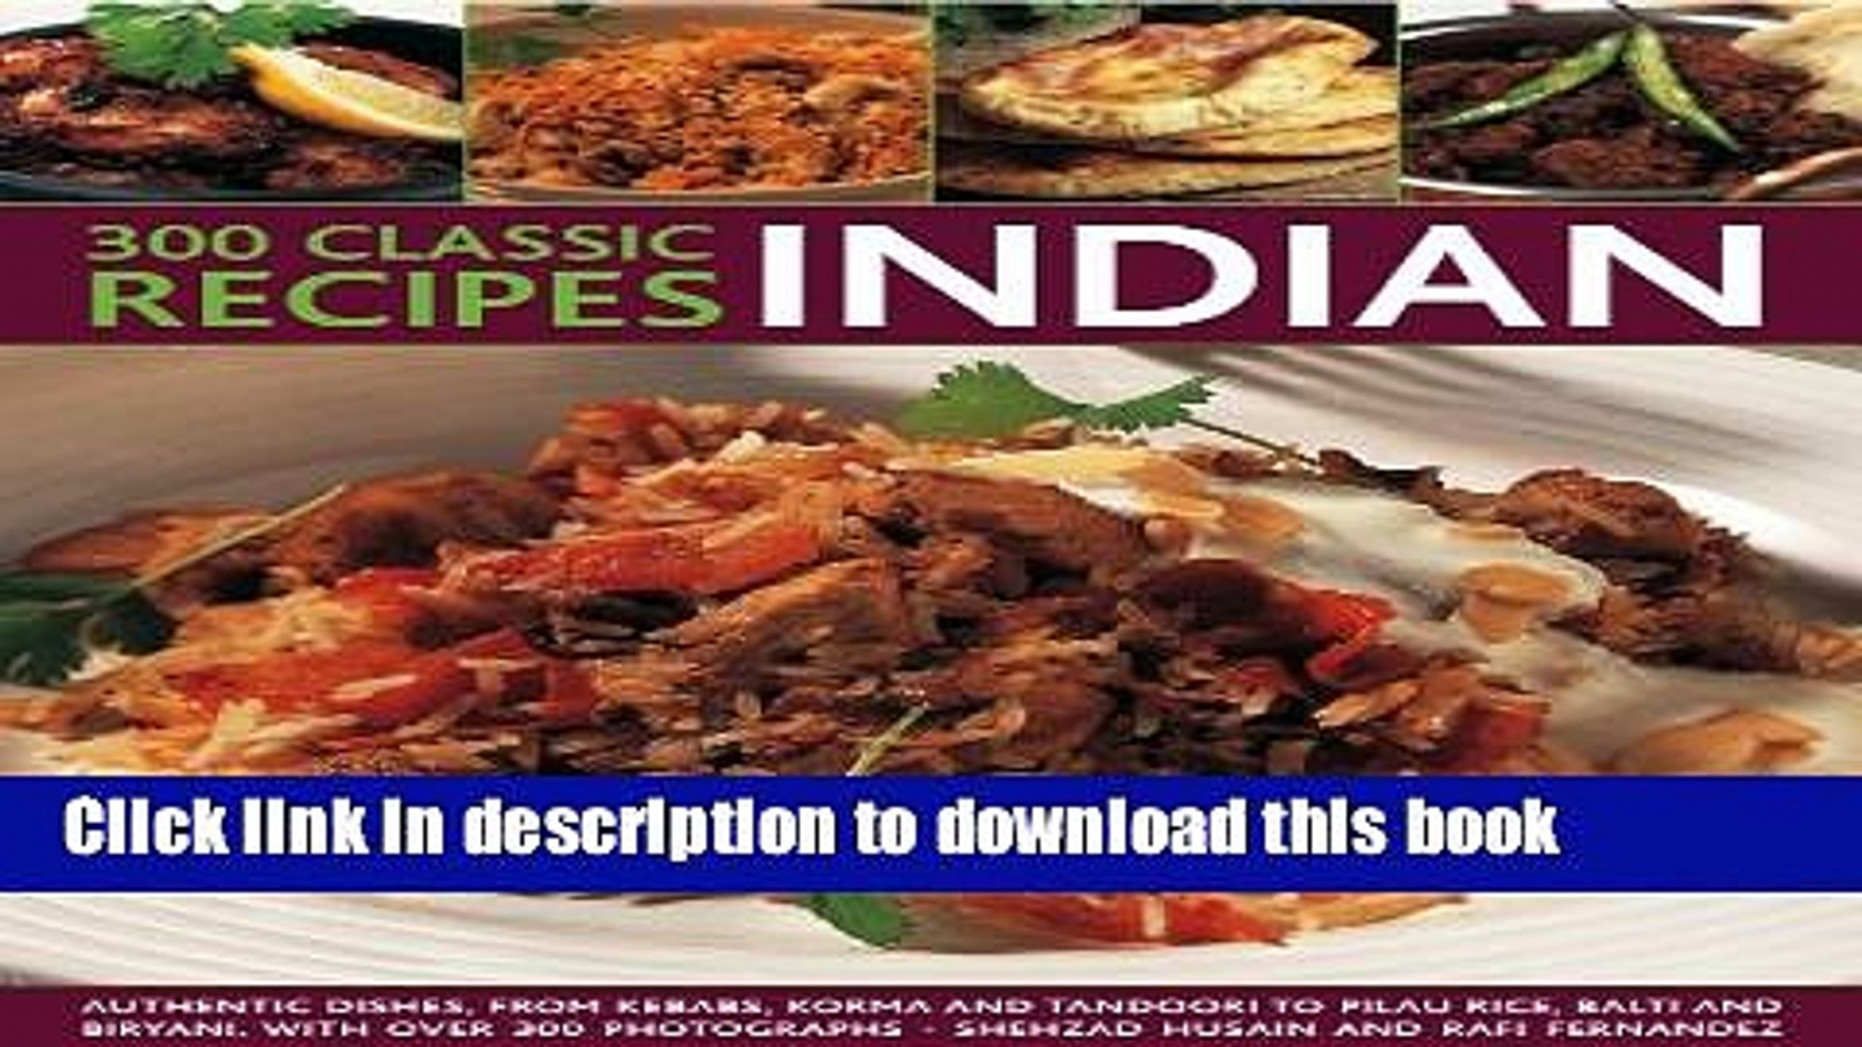 Download 10 Classic Indian Recipes: Authentic Dishes, From Kebabs, Korma  And Tandoori To Pilau - Food Recipes Download